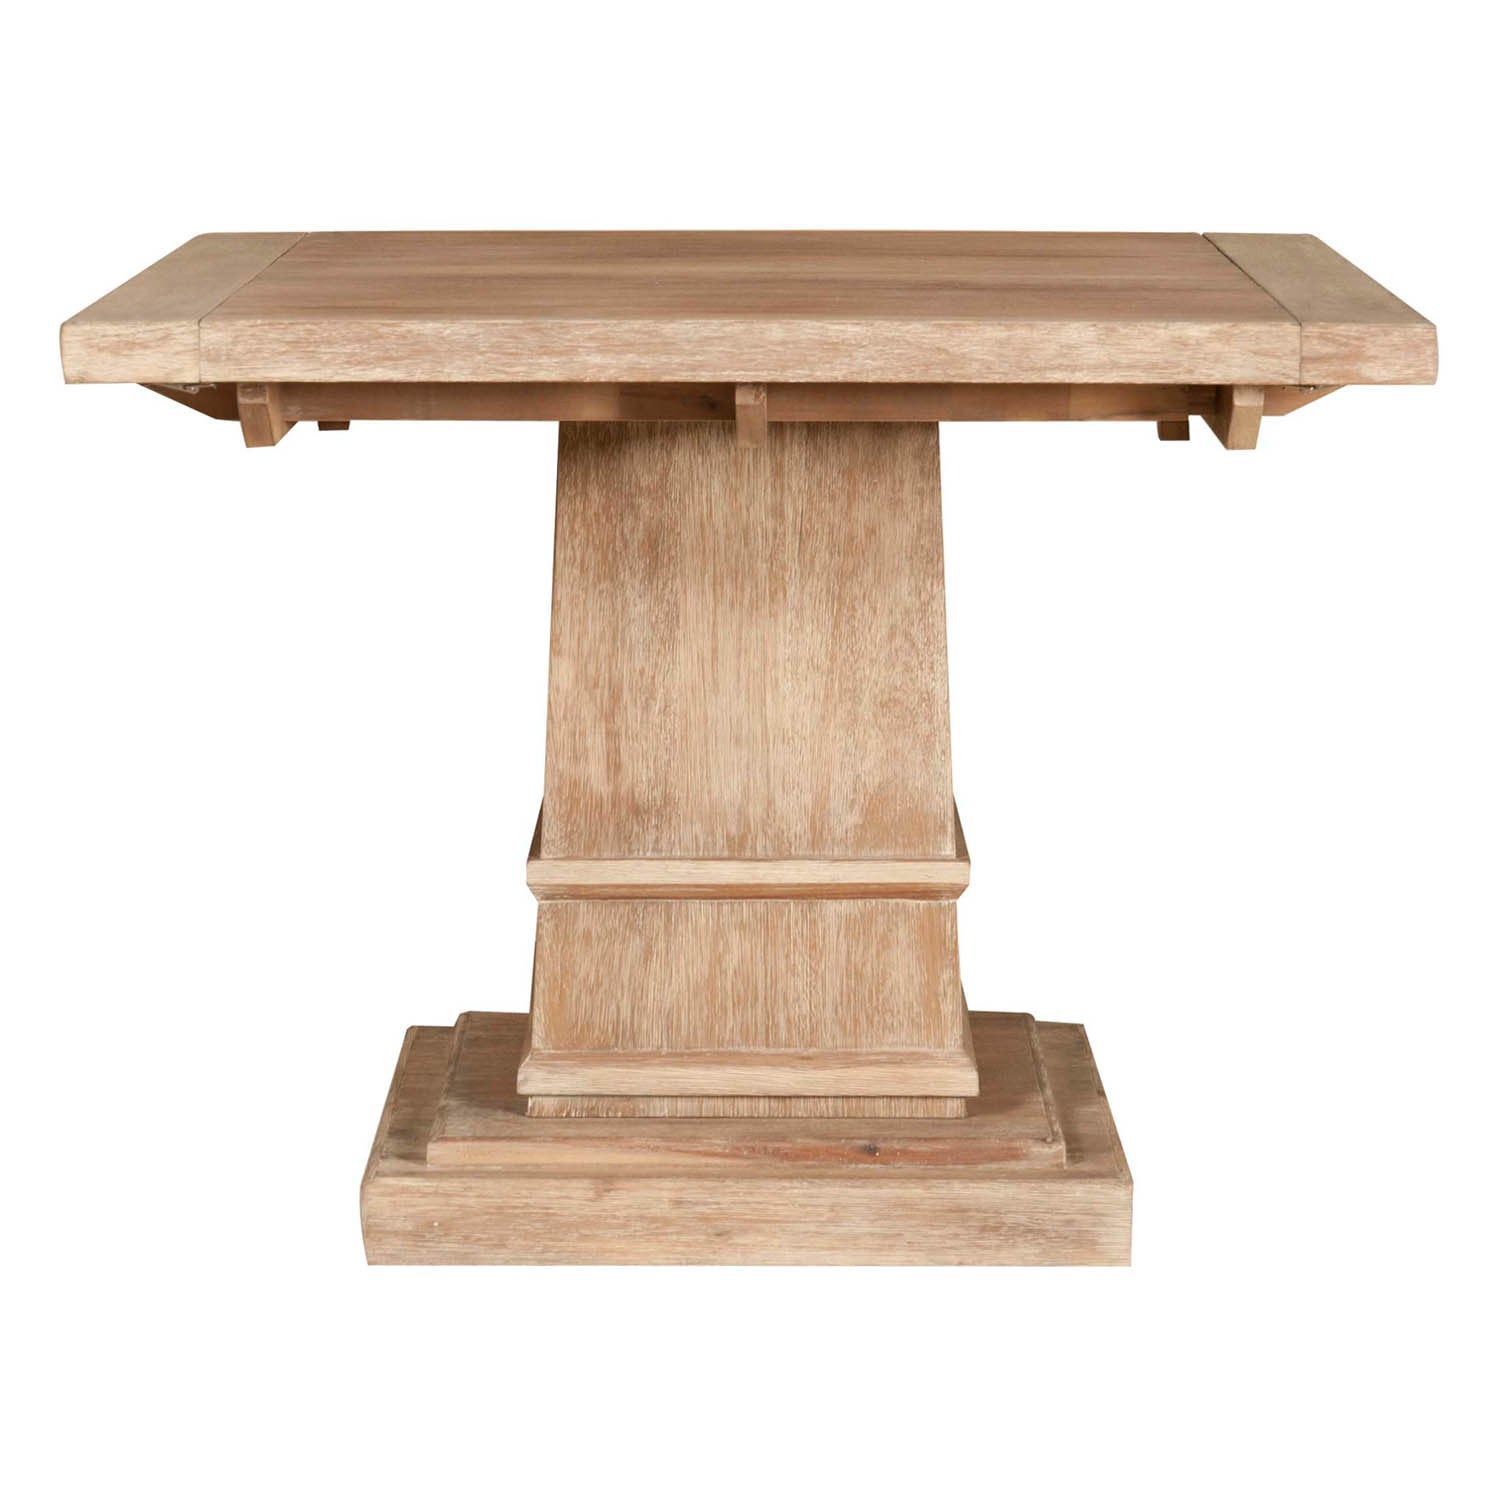 Harlan Square Extension Dining Table Stone Wash Free Shipping Today 13982219